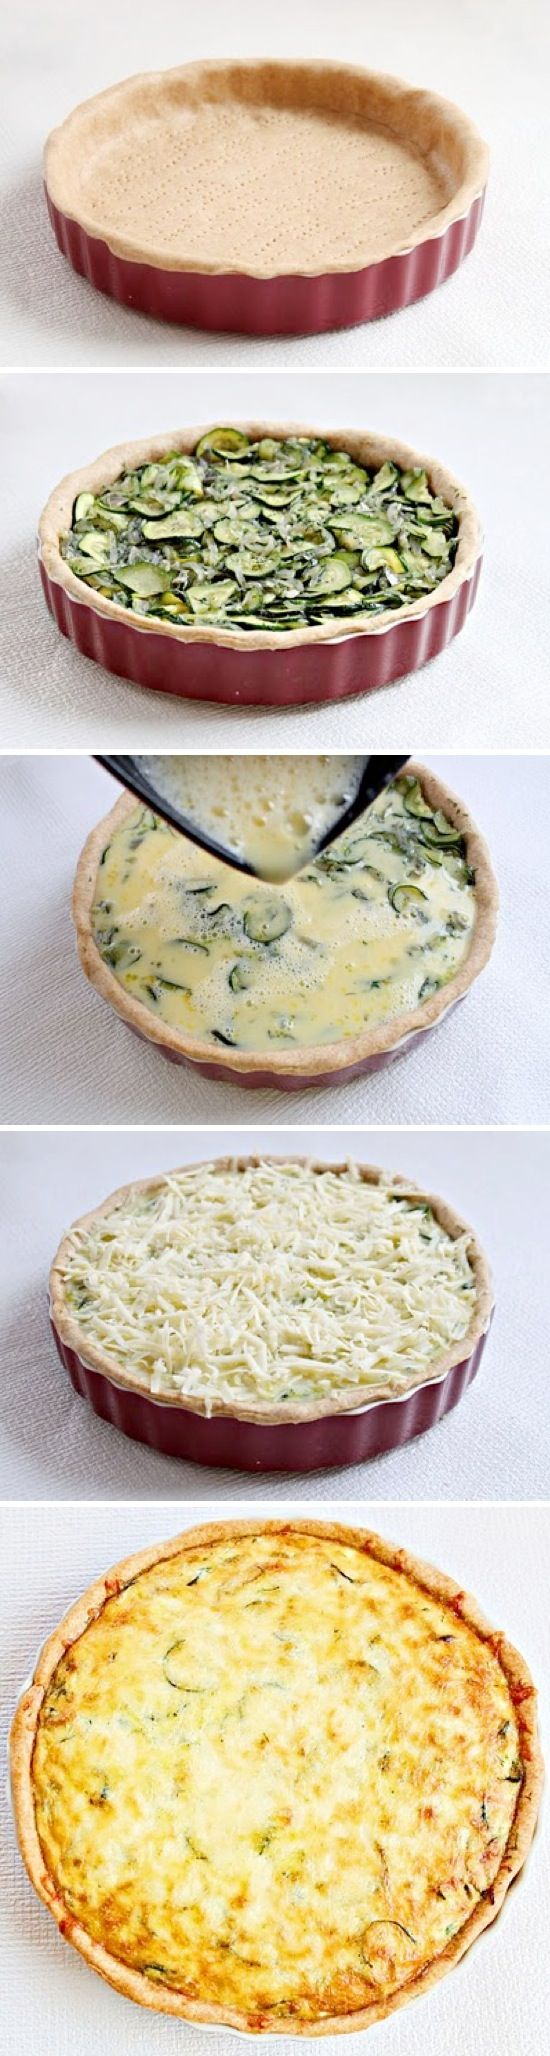 Zucchini Quiche | Recipe By Photo Try making it plant based by using Dreena Burton's momlet in place of egg mixture